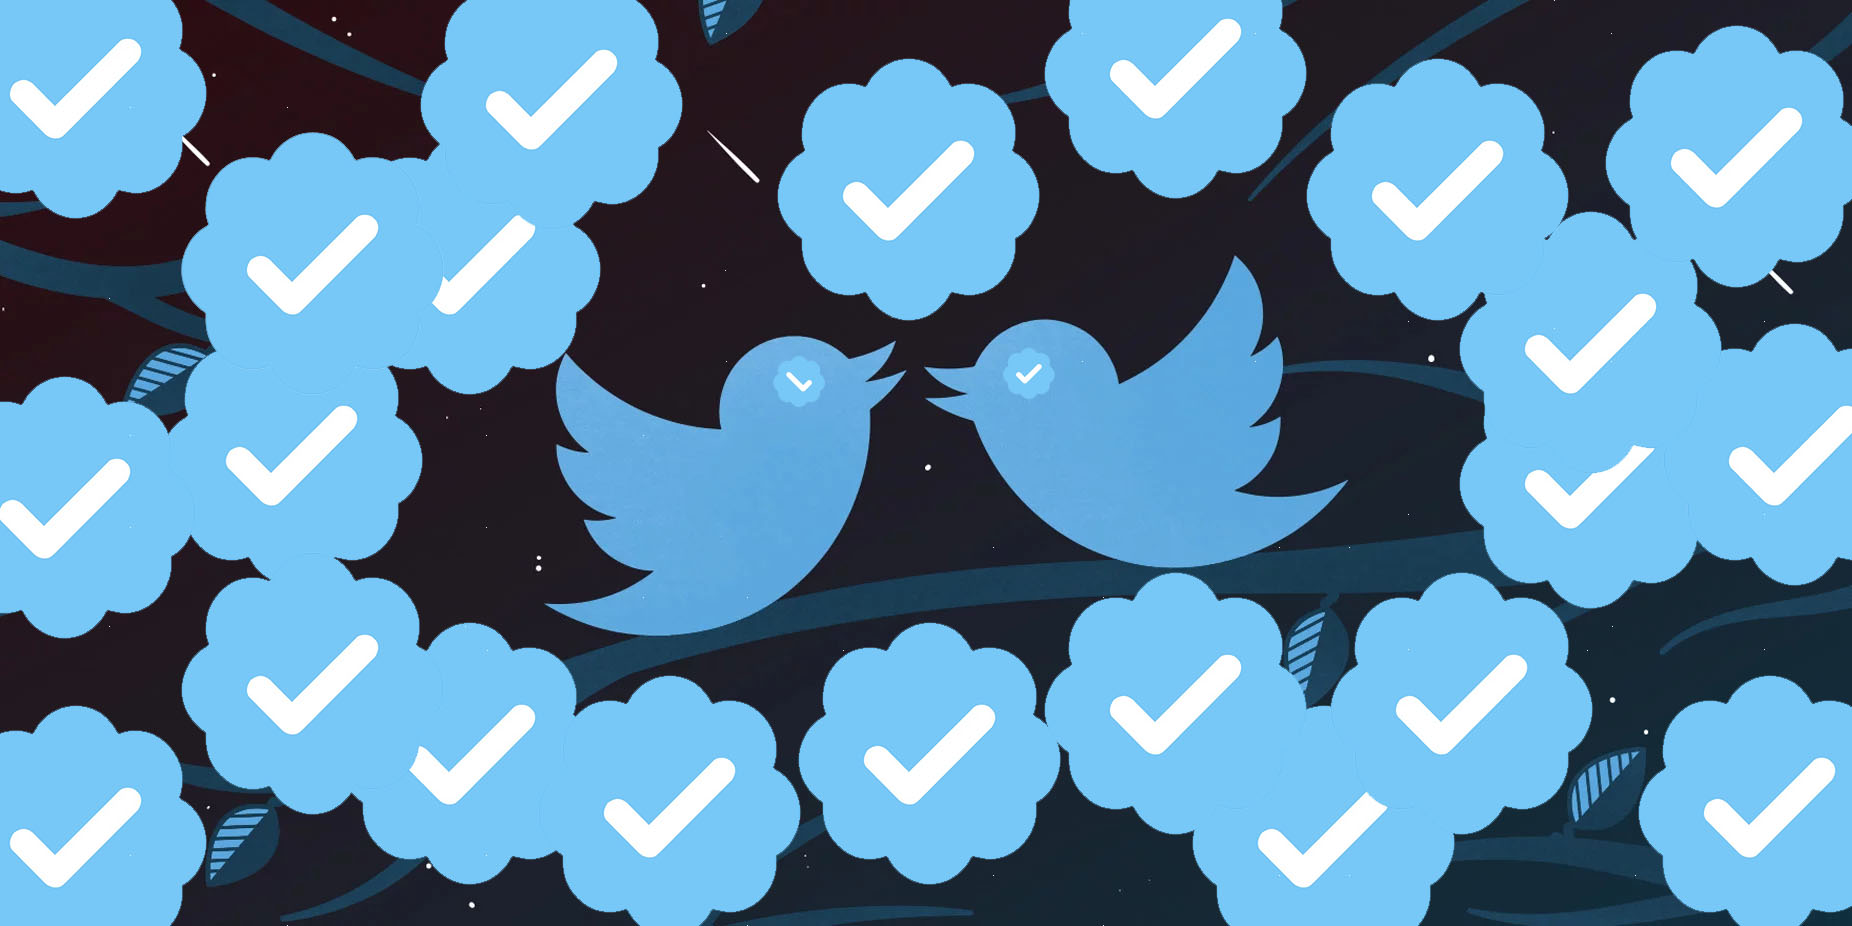 Twitter may eventually let anyone become verified